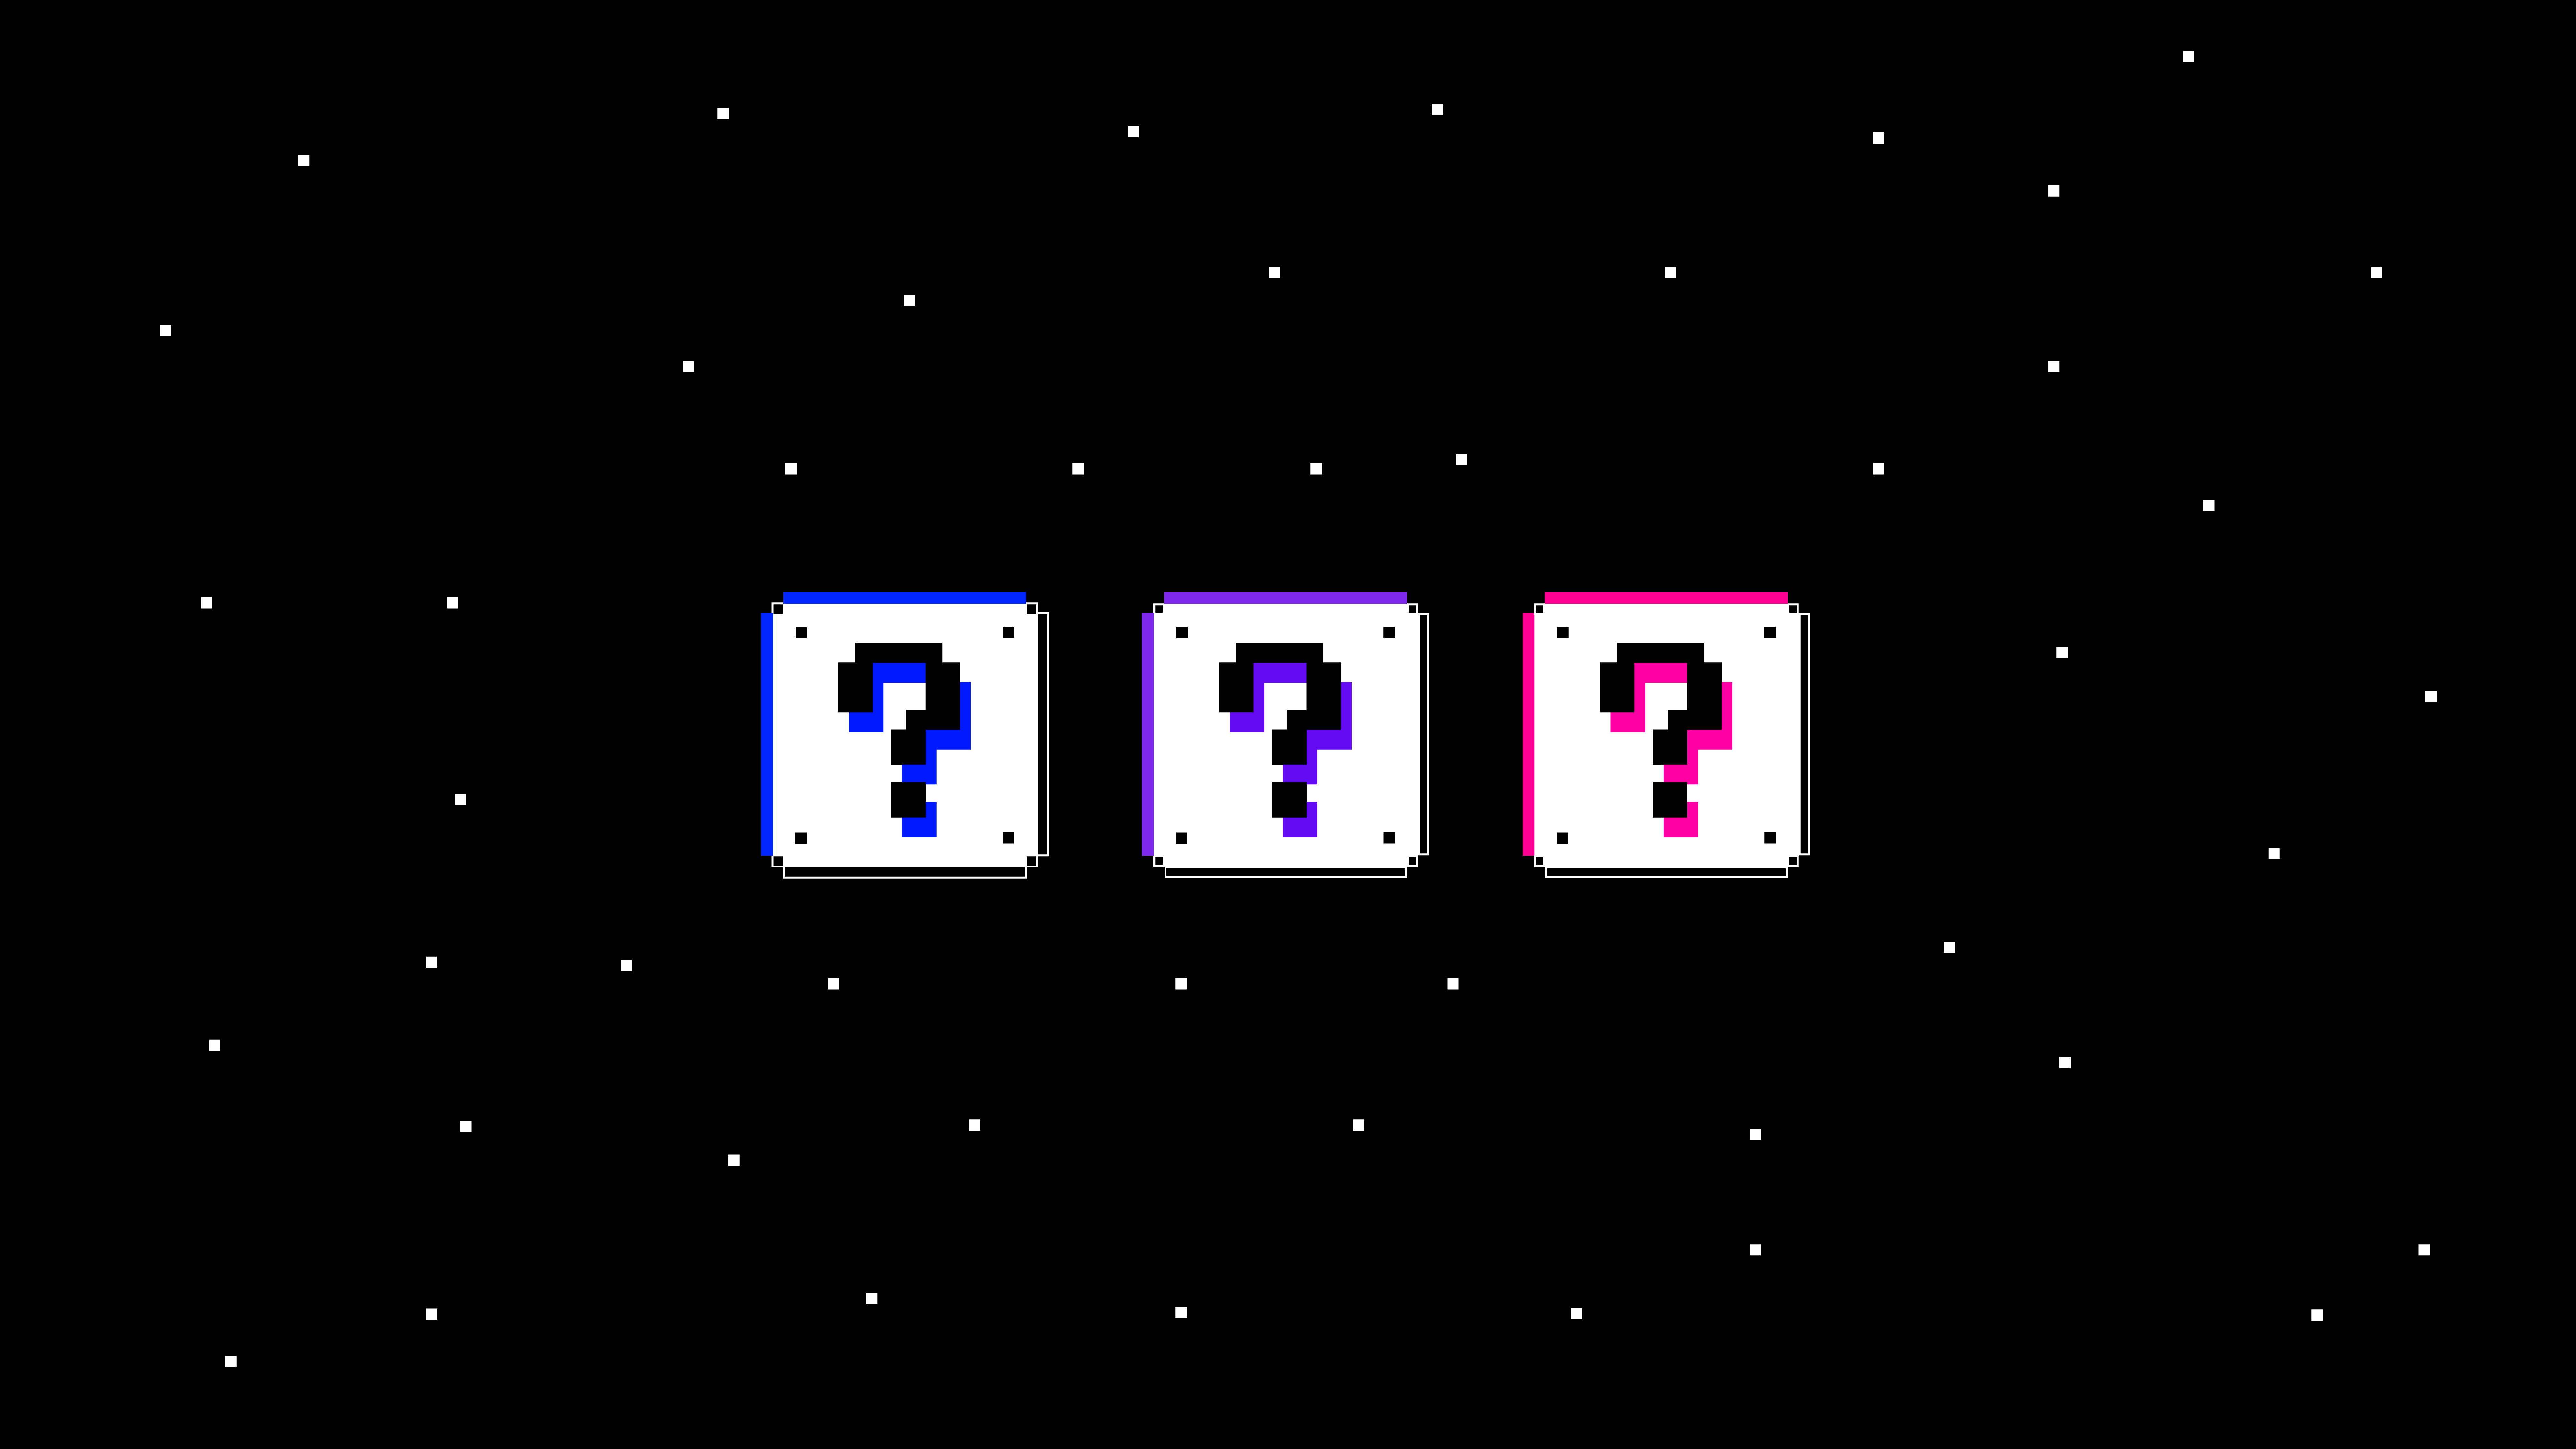 On a black background with small white pixel dots sit three pixelated box illustrations, each box has a question mark inside with a neon colour offset of blue, purple and pink